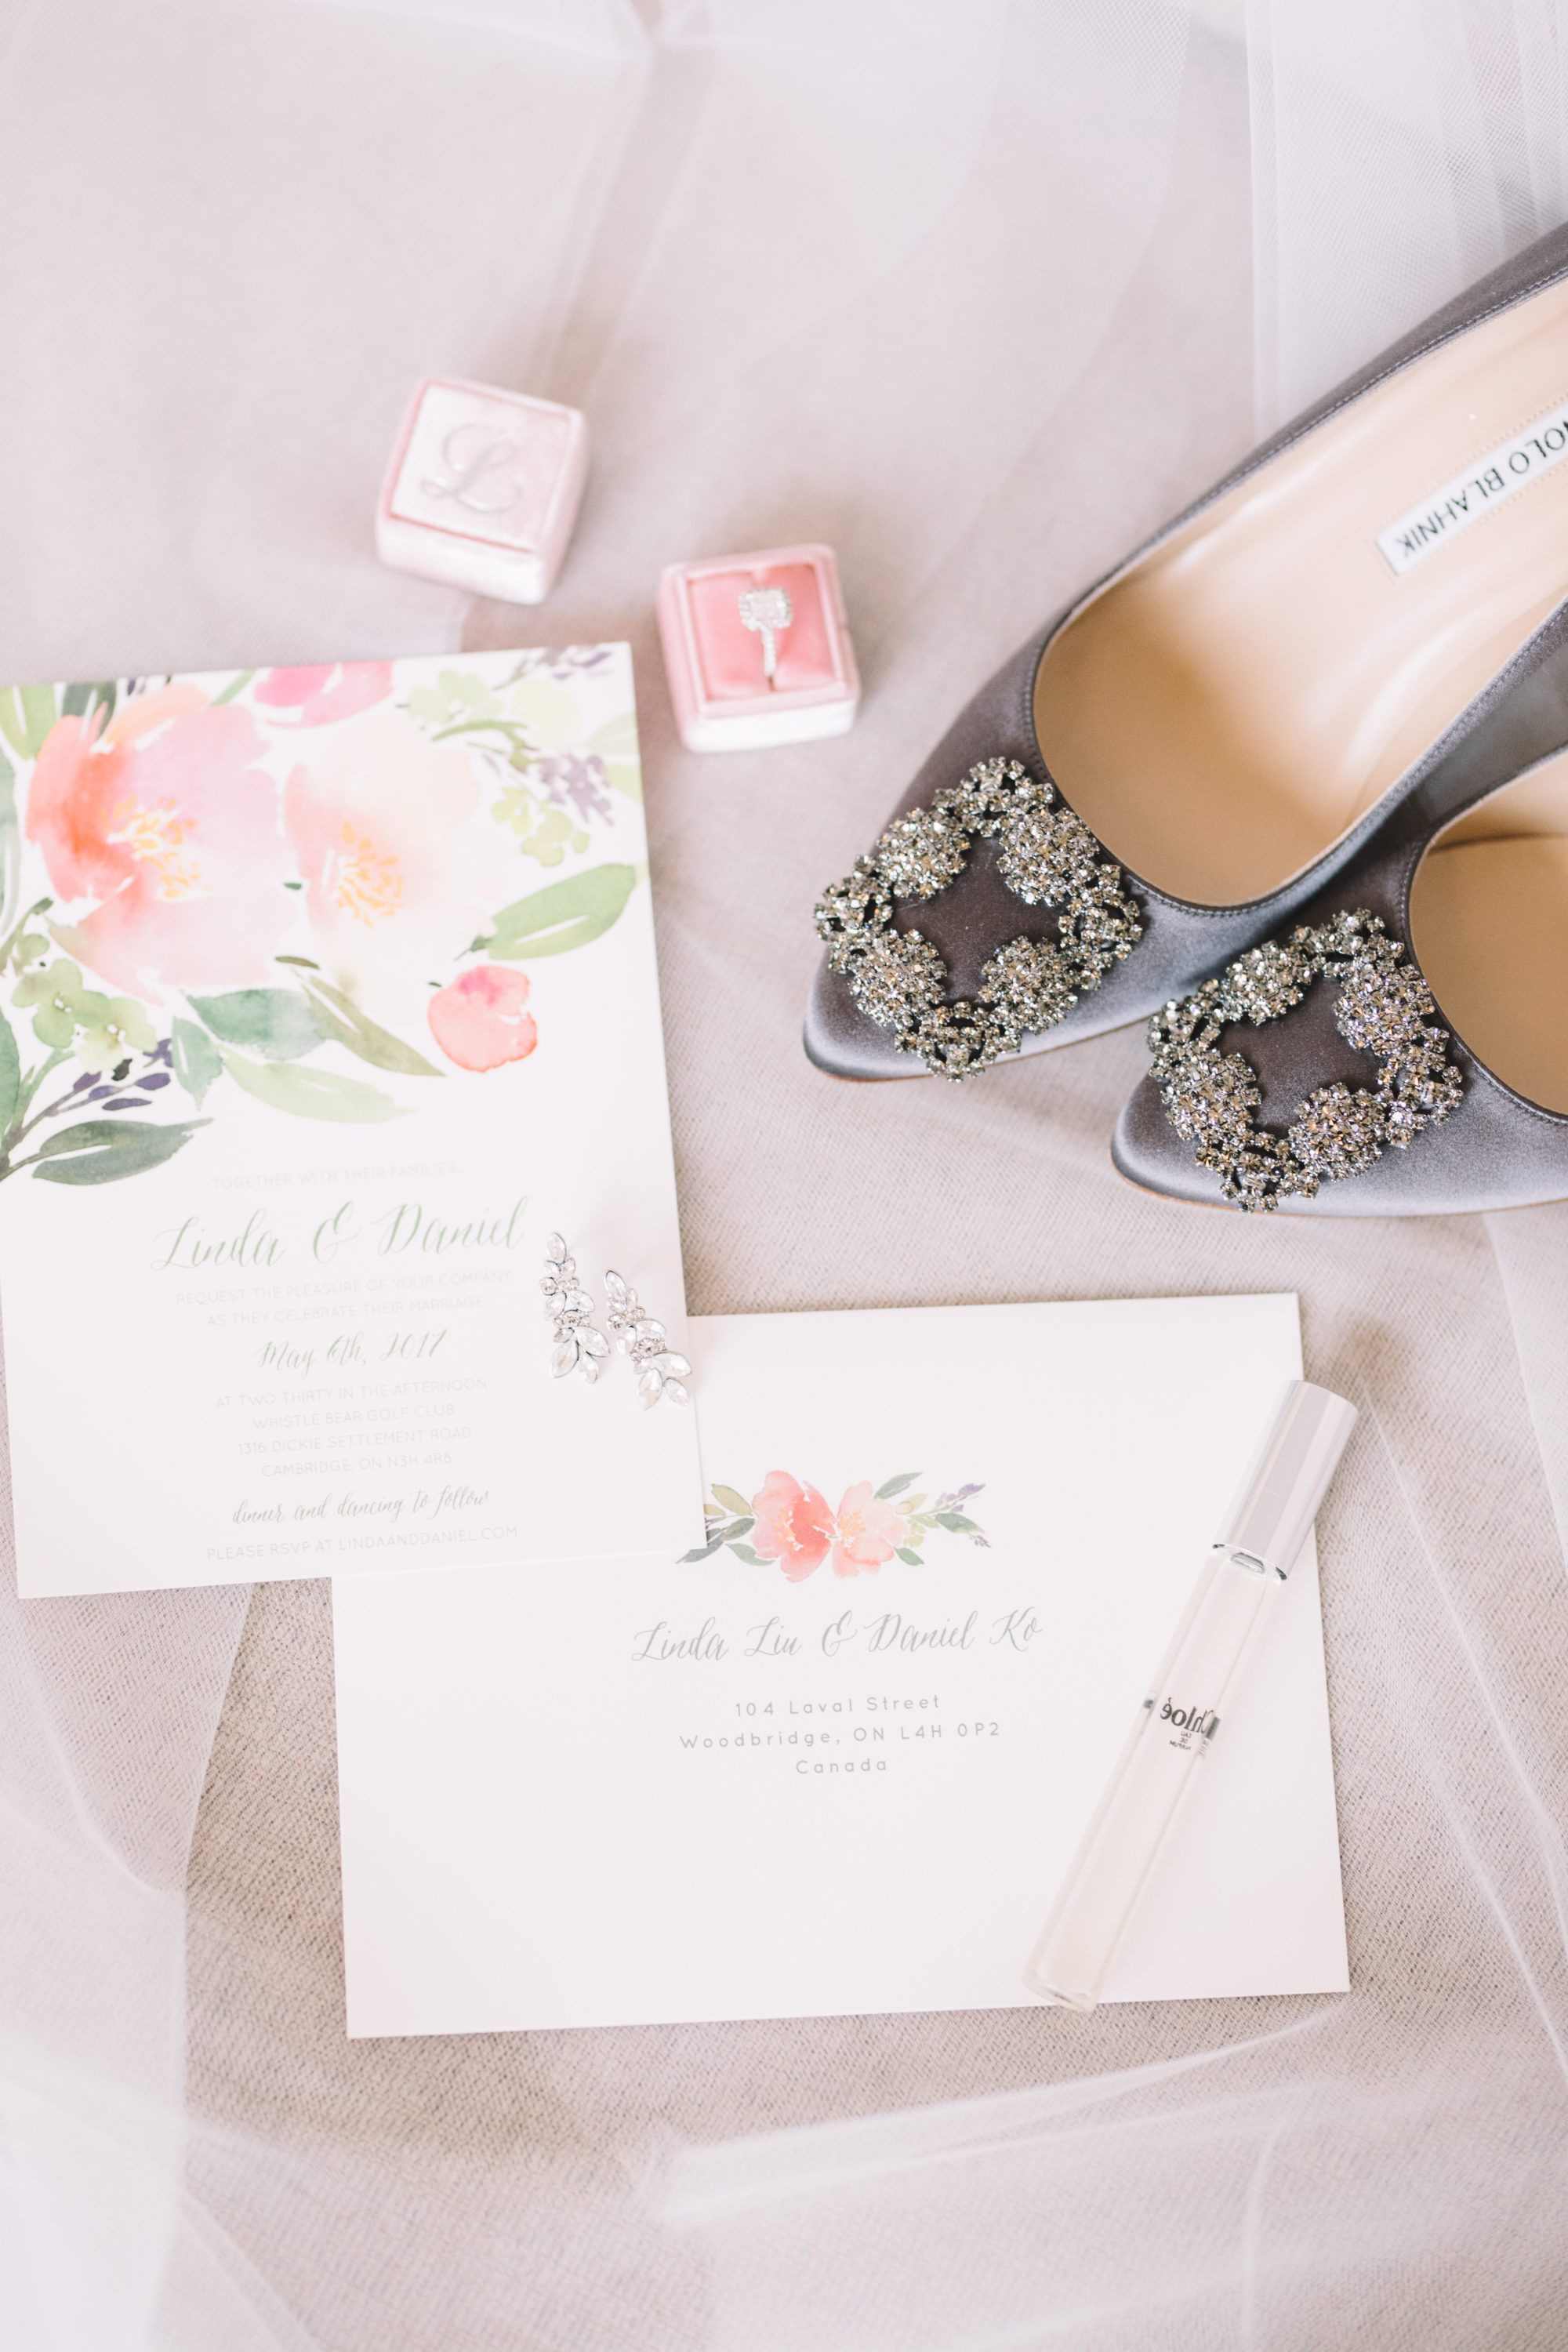 Bridal Detail shots of wedding invitations, engagement ring, wedding shoes